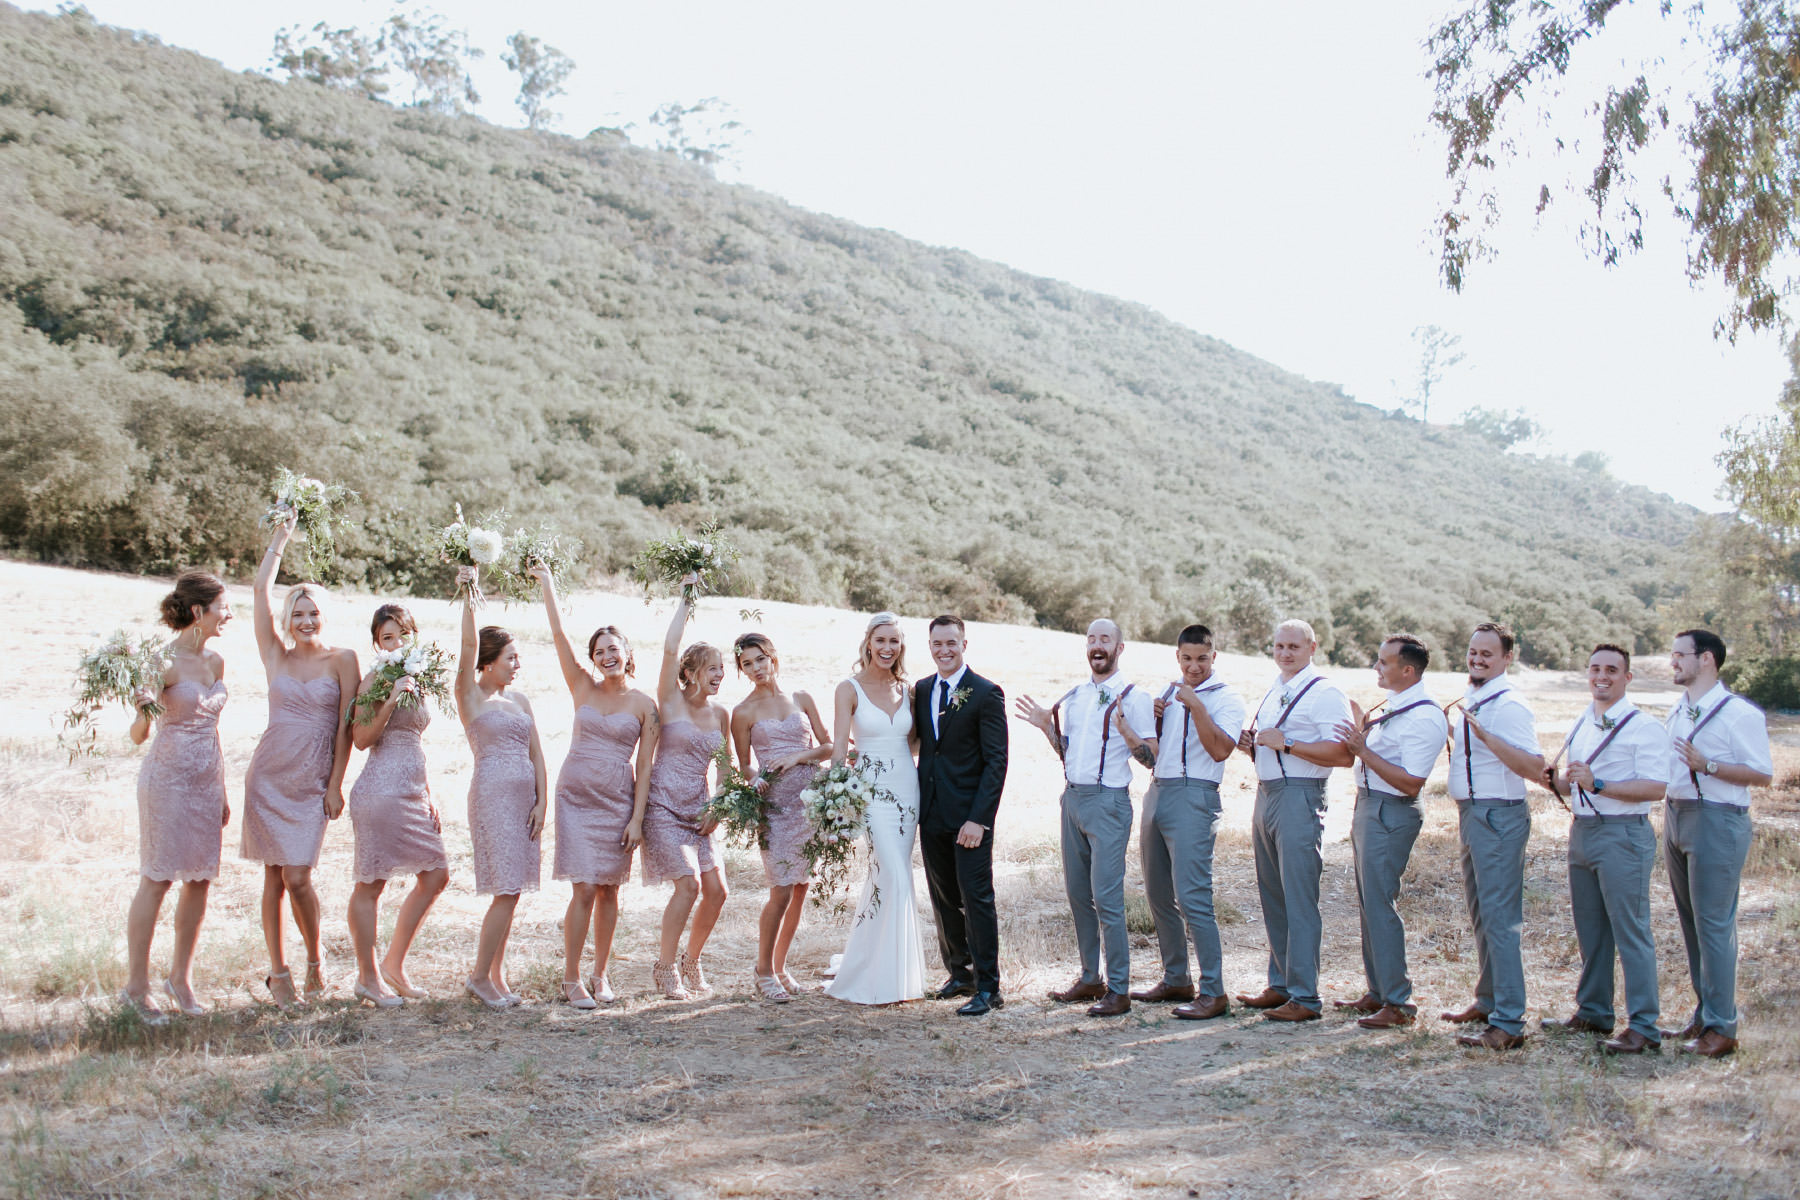 Bride and groom posed with entire bridal party being silly